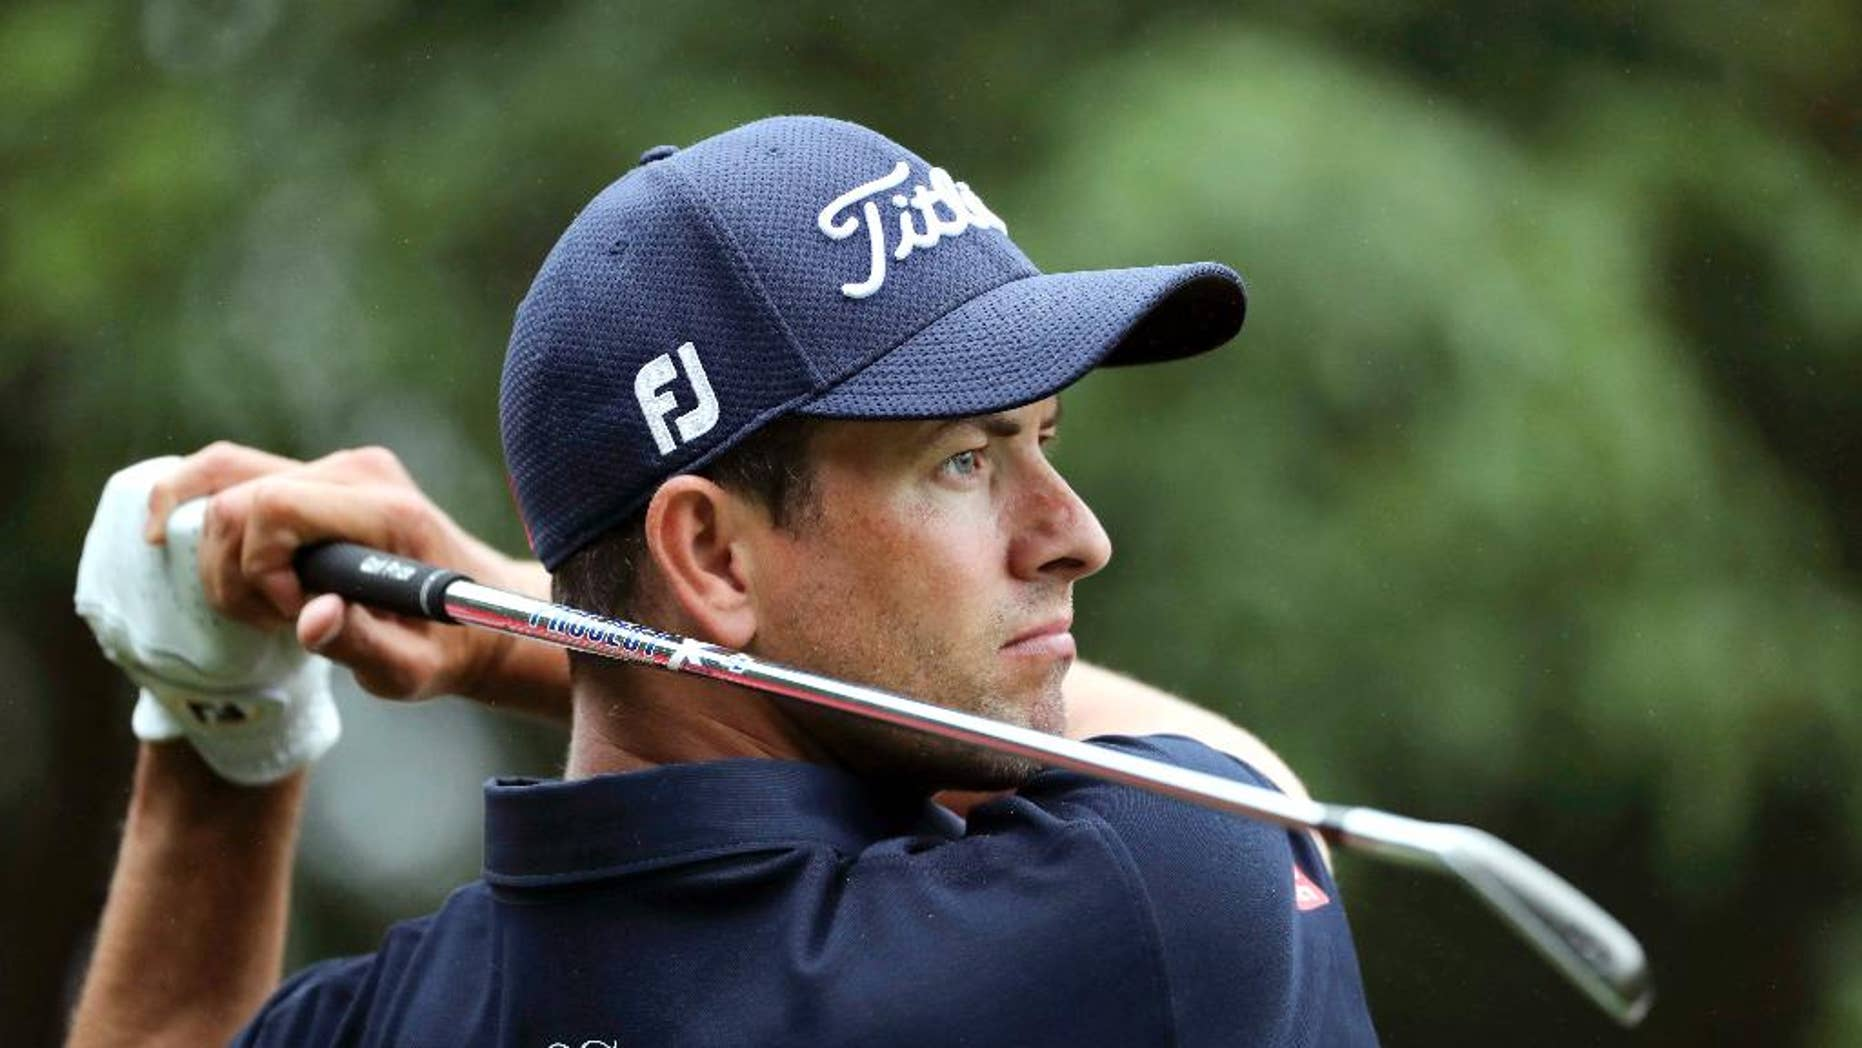 FILE - In this Oct. 27, 2016, file photo, Adam Scott of Australia hits the ball from a sand bank during the WGC-HSBC Champions golf tournament at the Sheshan International Golf Club in Shanghai, China. On Friday, Scott put together back-to-back rounds of 68 and feels like he's really back in the swing of things as he heads into the weekend at the Australian PGA Championship four shots off the pace. (AP Photo/Ng Han Guan, File)